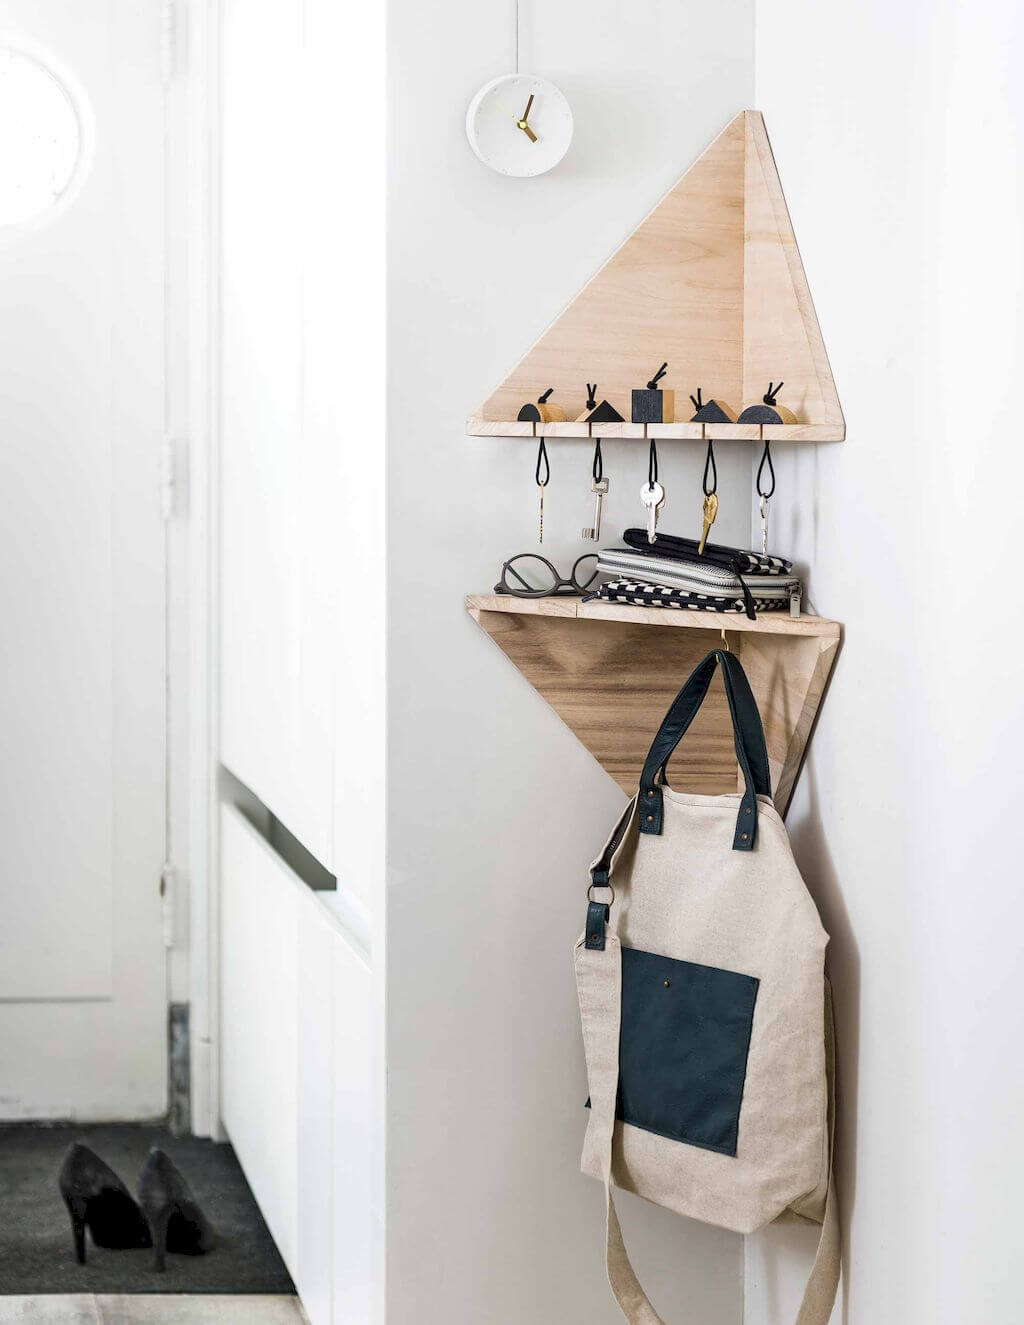 Ingenious Triangular Shelf for Keys